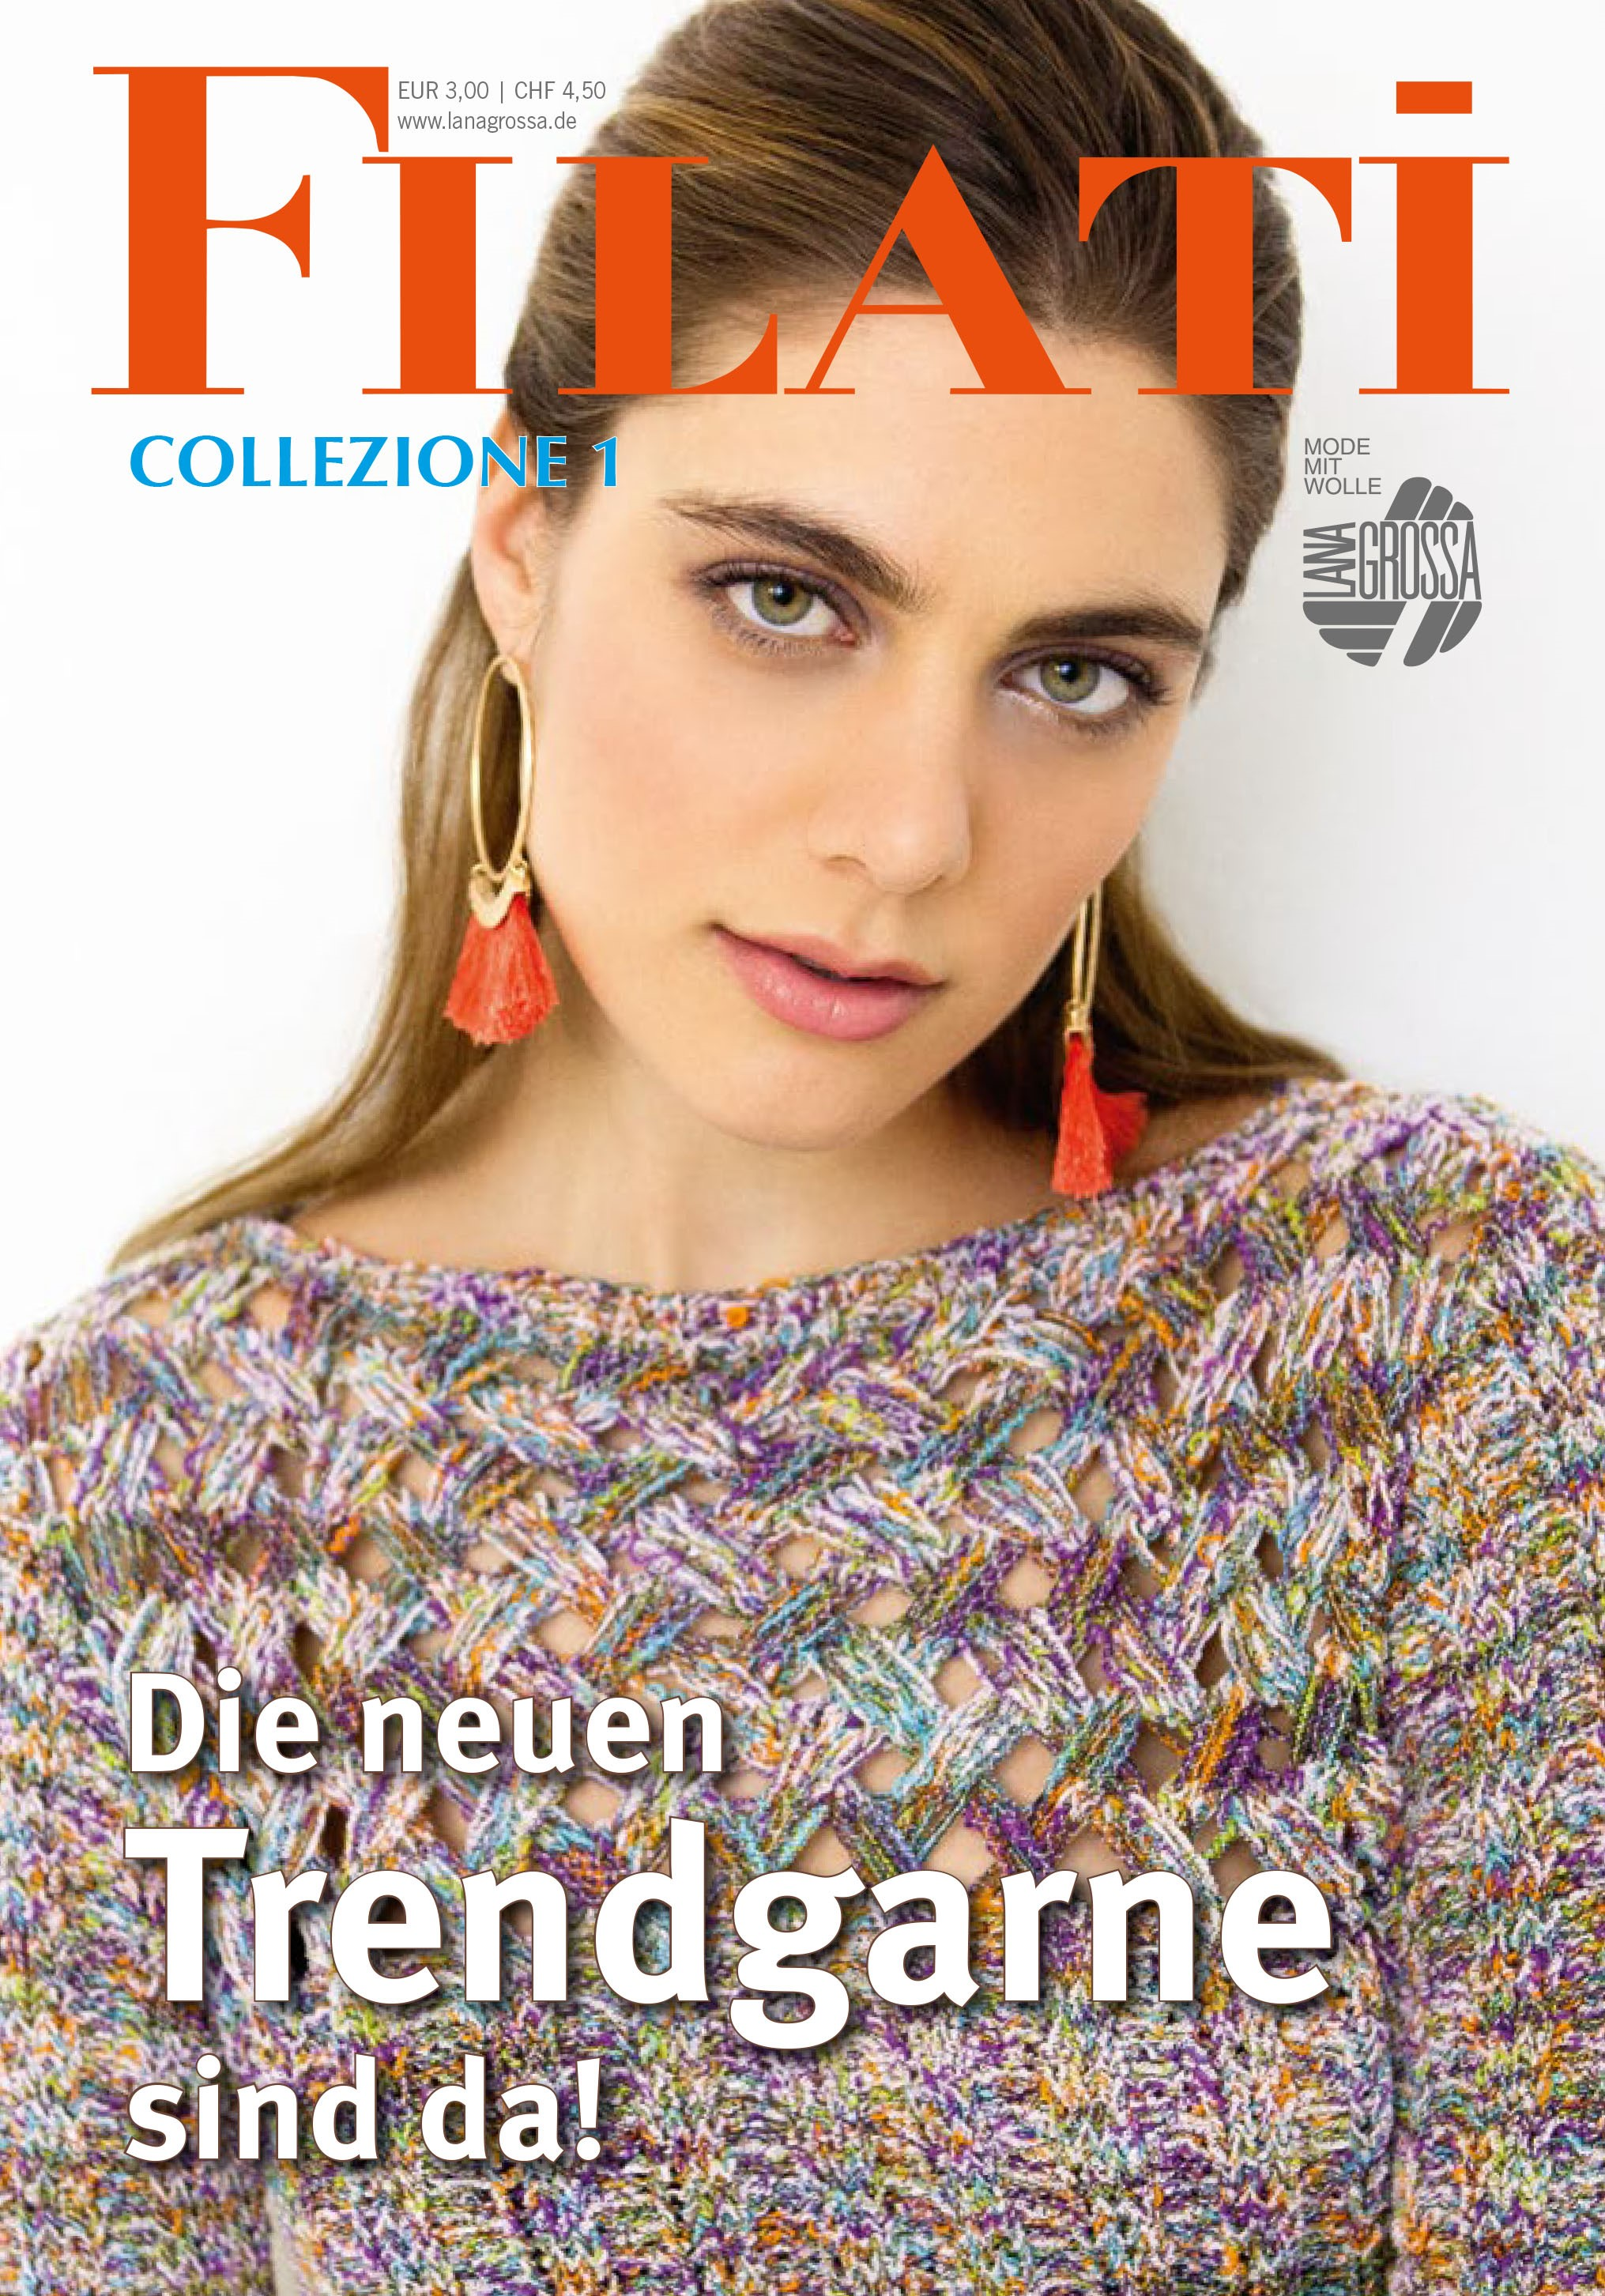 Lana Grossa FILATI COLLEZIONE No. 1 - German Edition